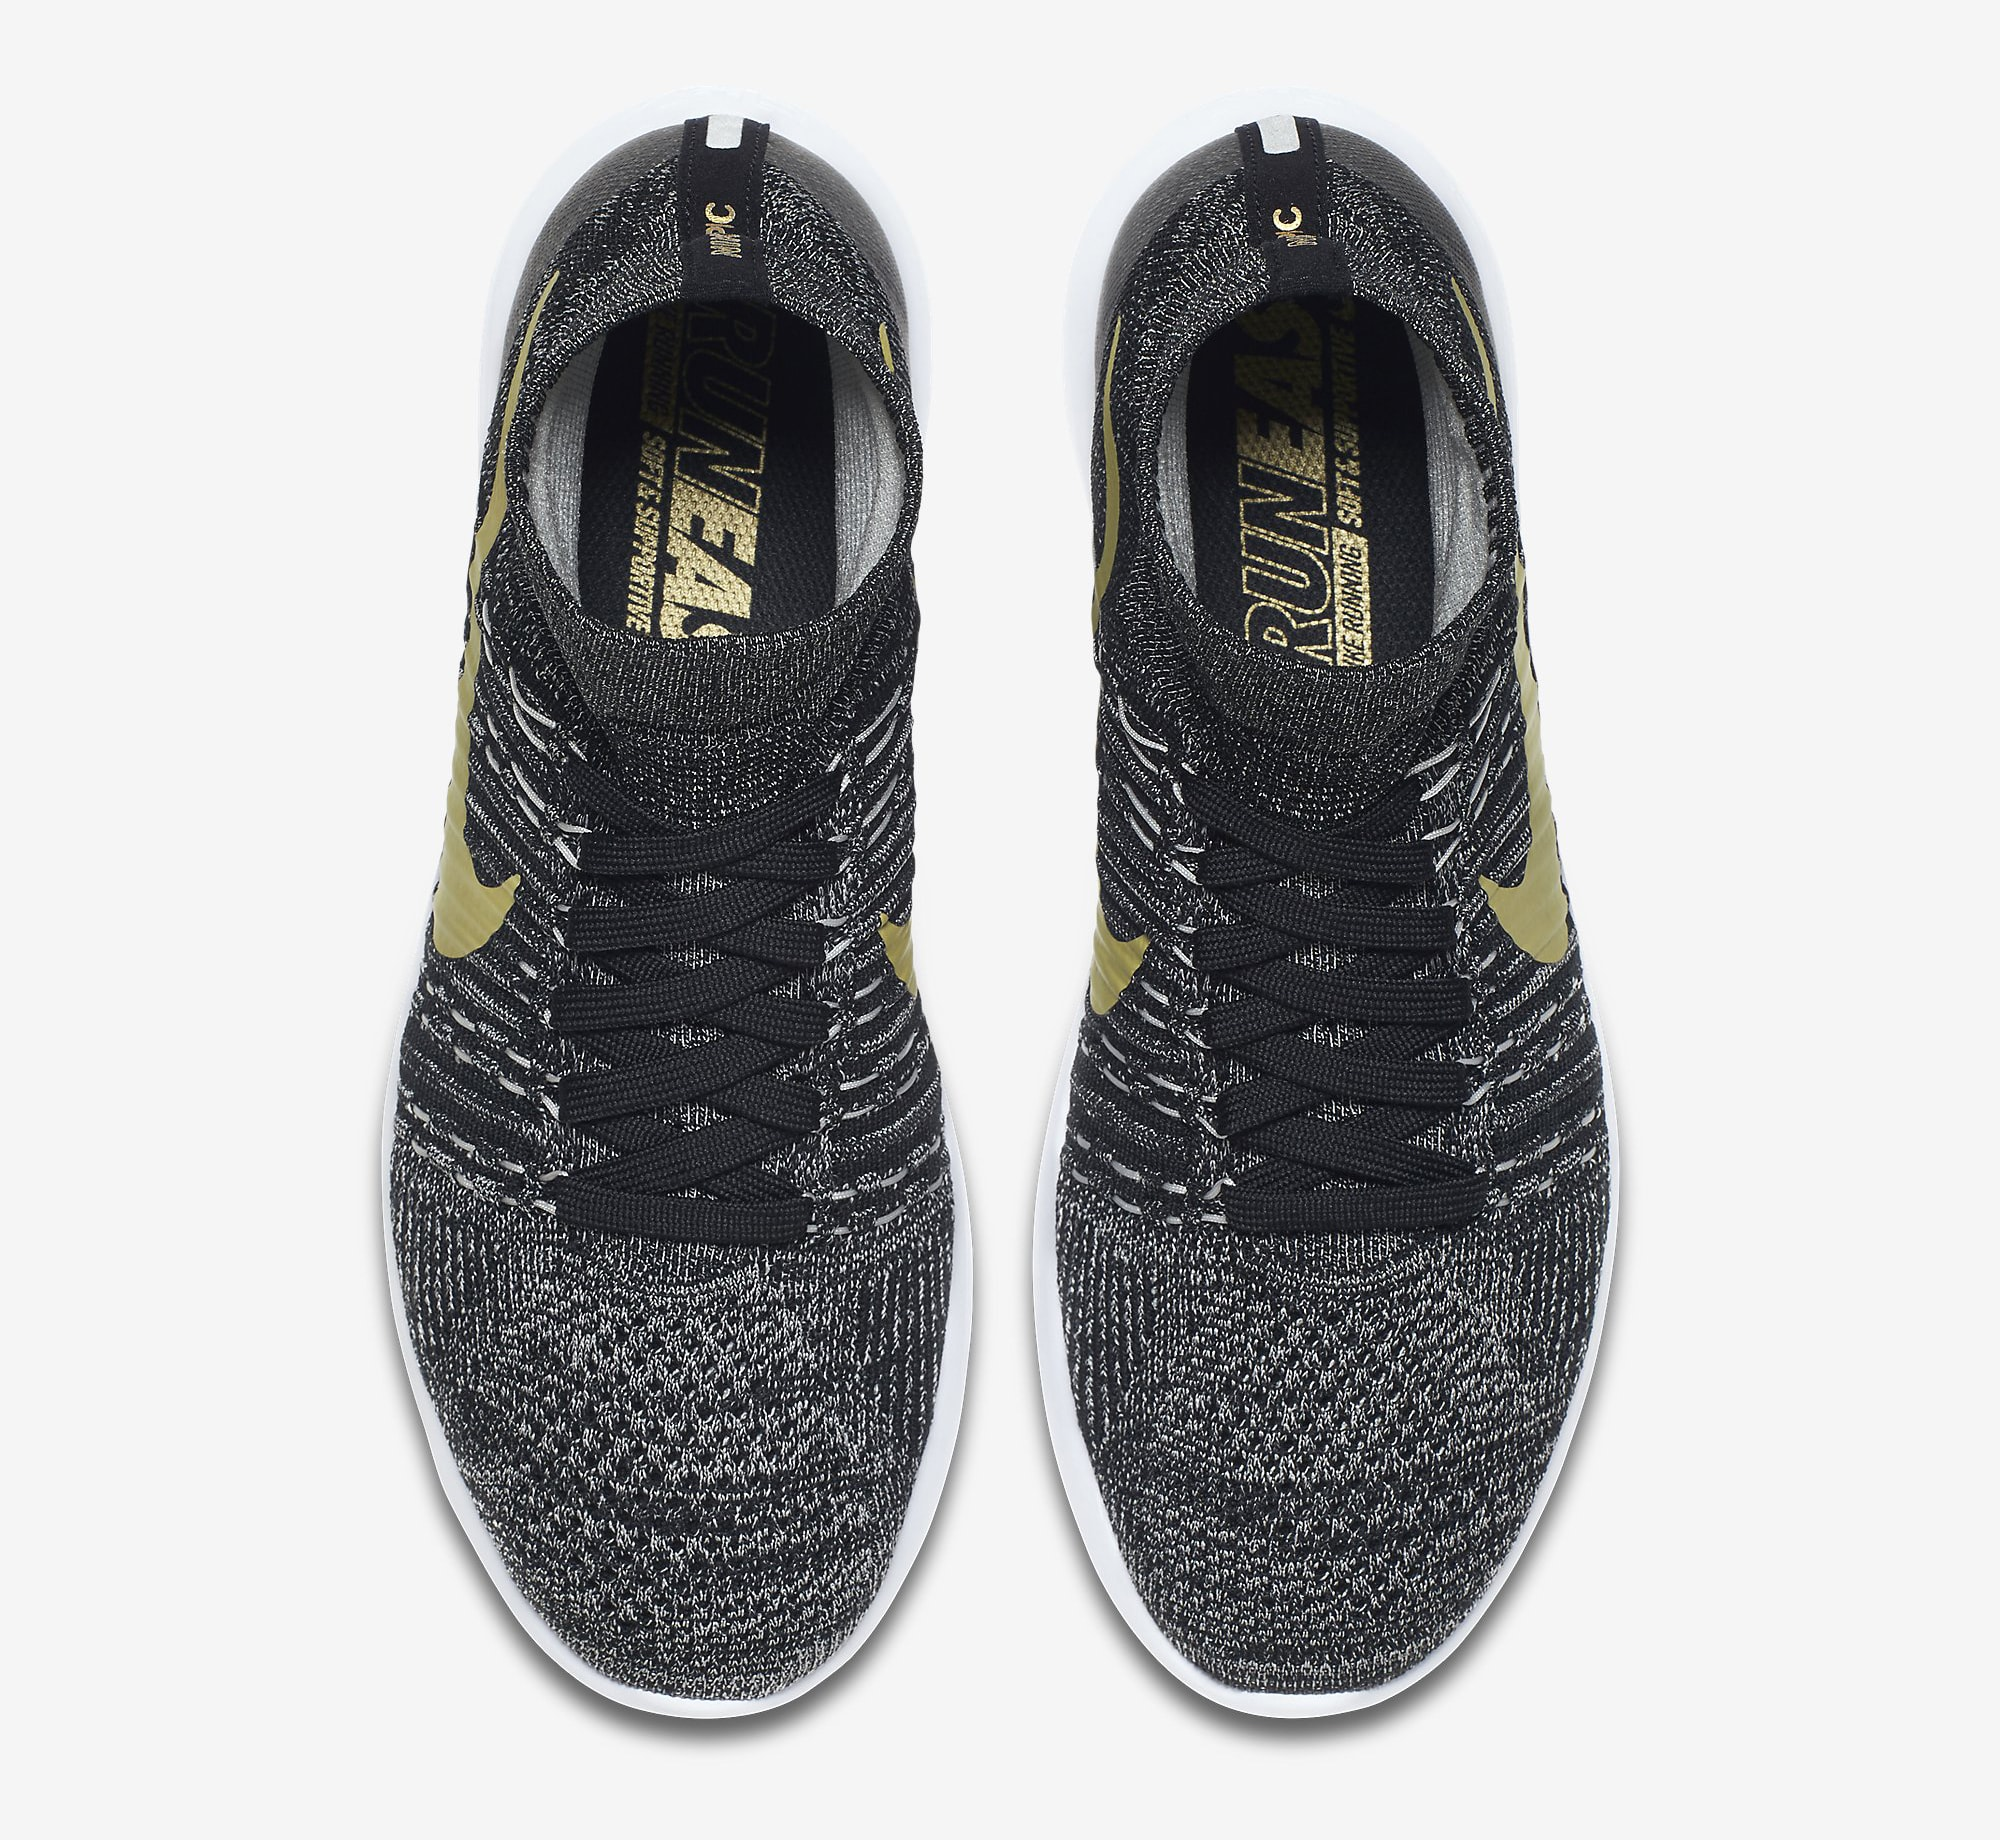 factory authentic eba60 b2afc ... Image via Nike Nike LunarEpic Flyknit BHM 881681-007 Top ...